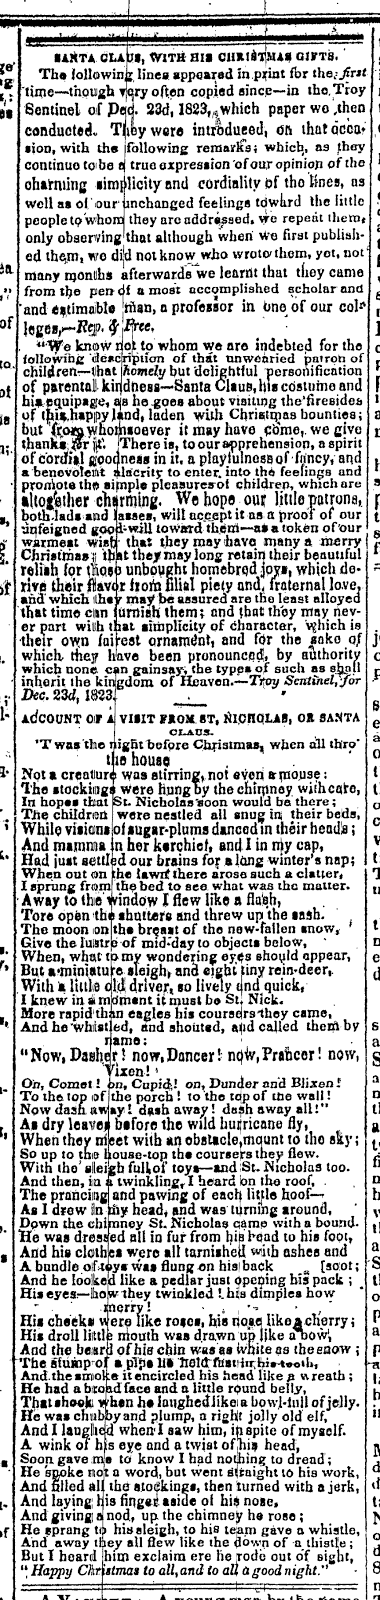 Melvilliana more testimony from orville l holley for clement c more testimony from orville l holley for clement c moores authorship of a visit from st nicholas aka the night before christmas fandeluxe Choice Image